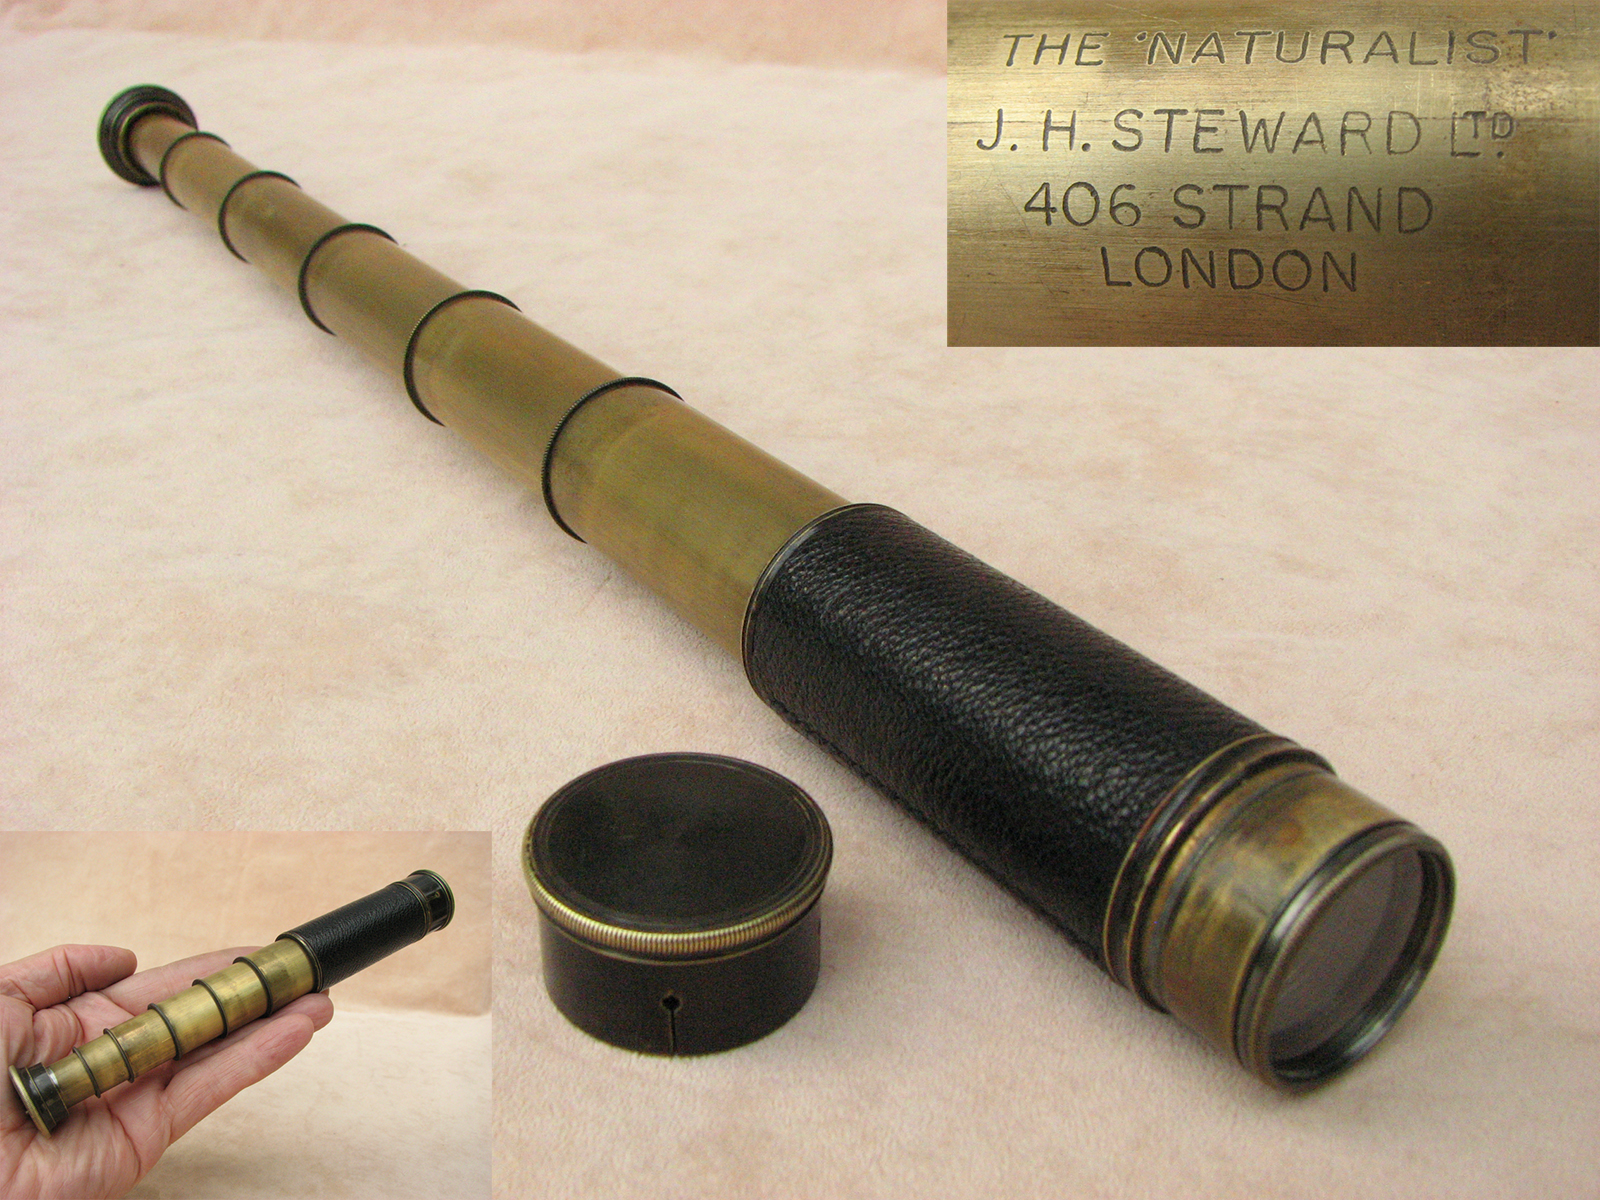 J.H. Steward 6 draw pocket telescope 'The Naturalist'